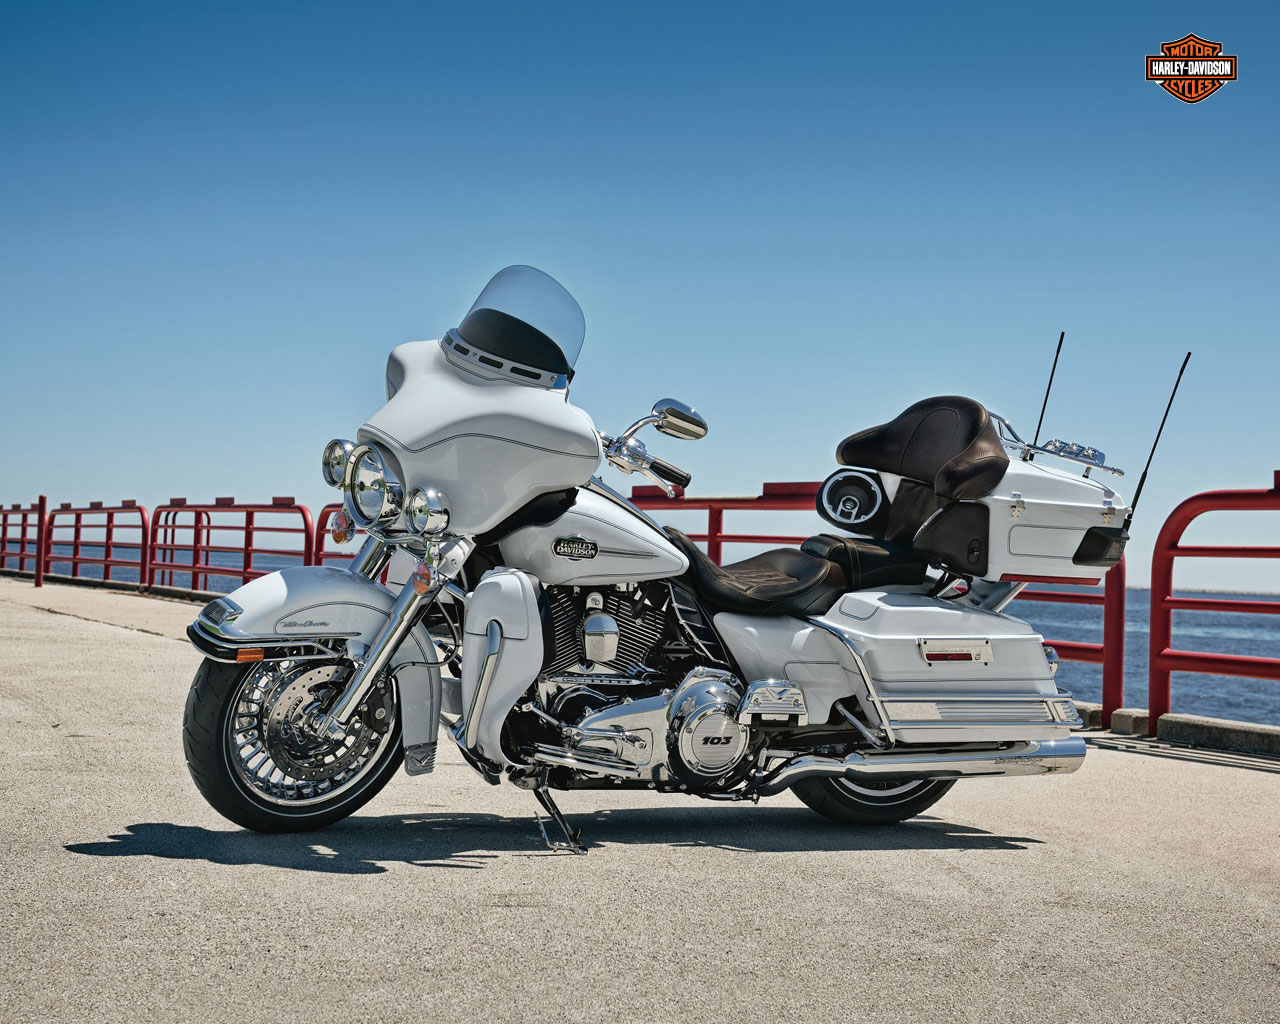 Harley-Davidson FLHTC Electra Glide Classic 2013 pics #19881